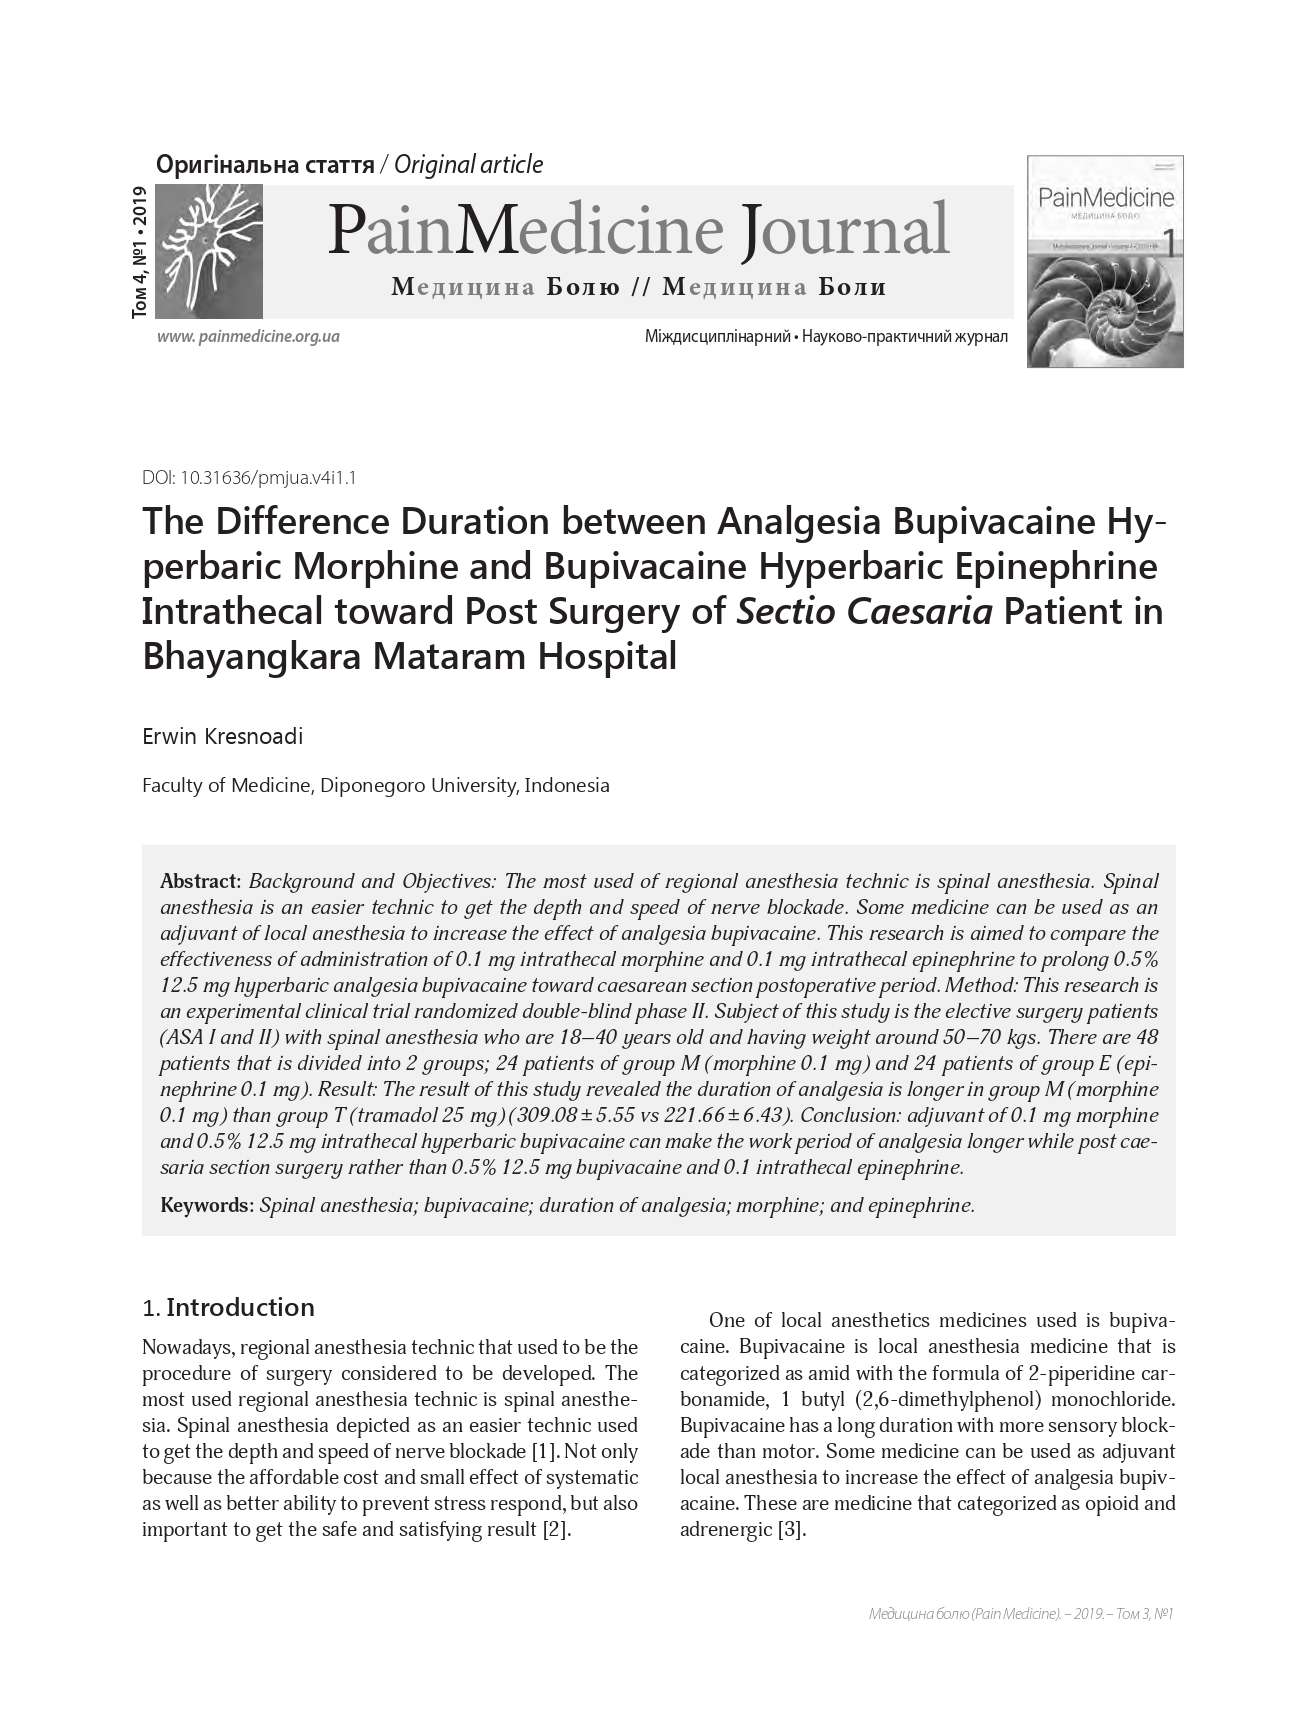 The Difference Duration between Analgesia Bupivacaine Hyperbaric Morphine and Bupivacaine Hyperbaric Epinephrine Intrathecal toward Post Surgery of Sectio Caesaria Patient in Bhayangkara Mataram Hospital